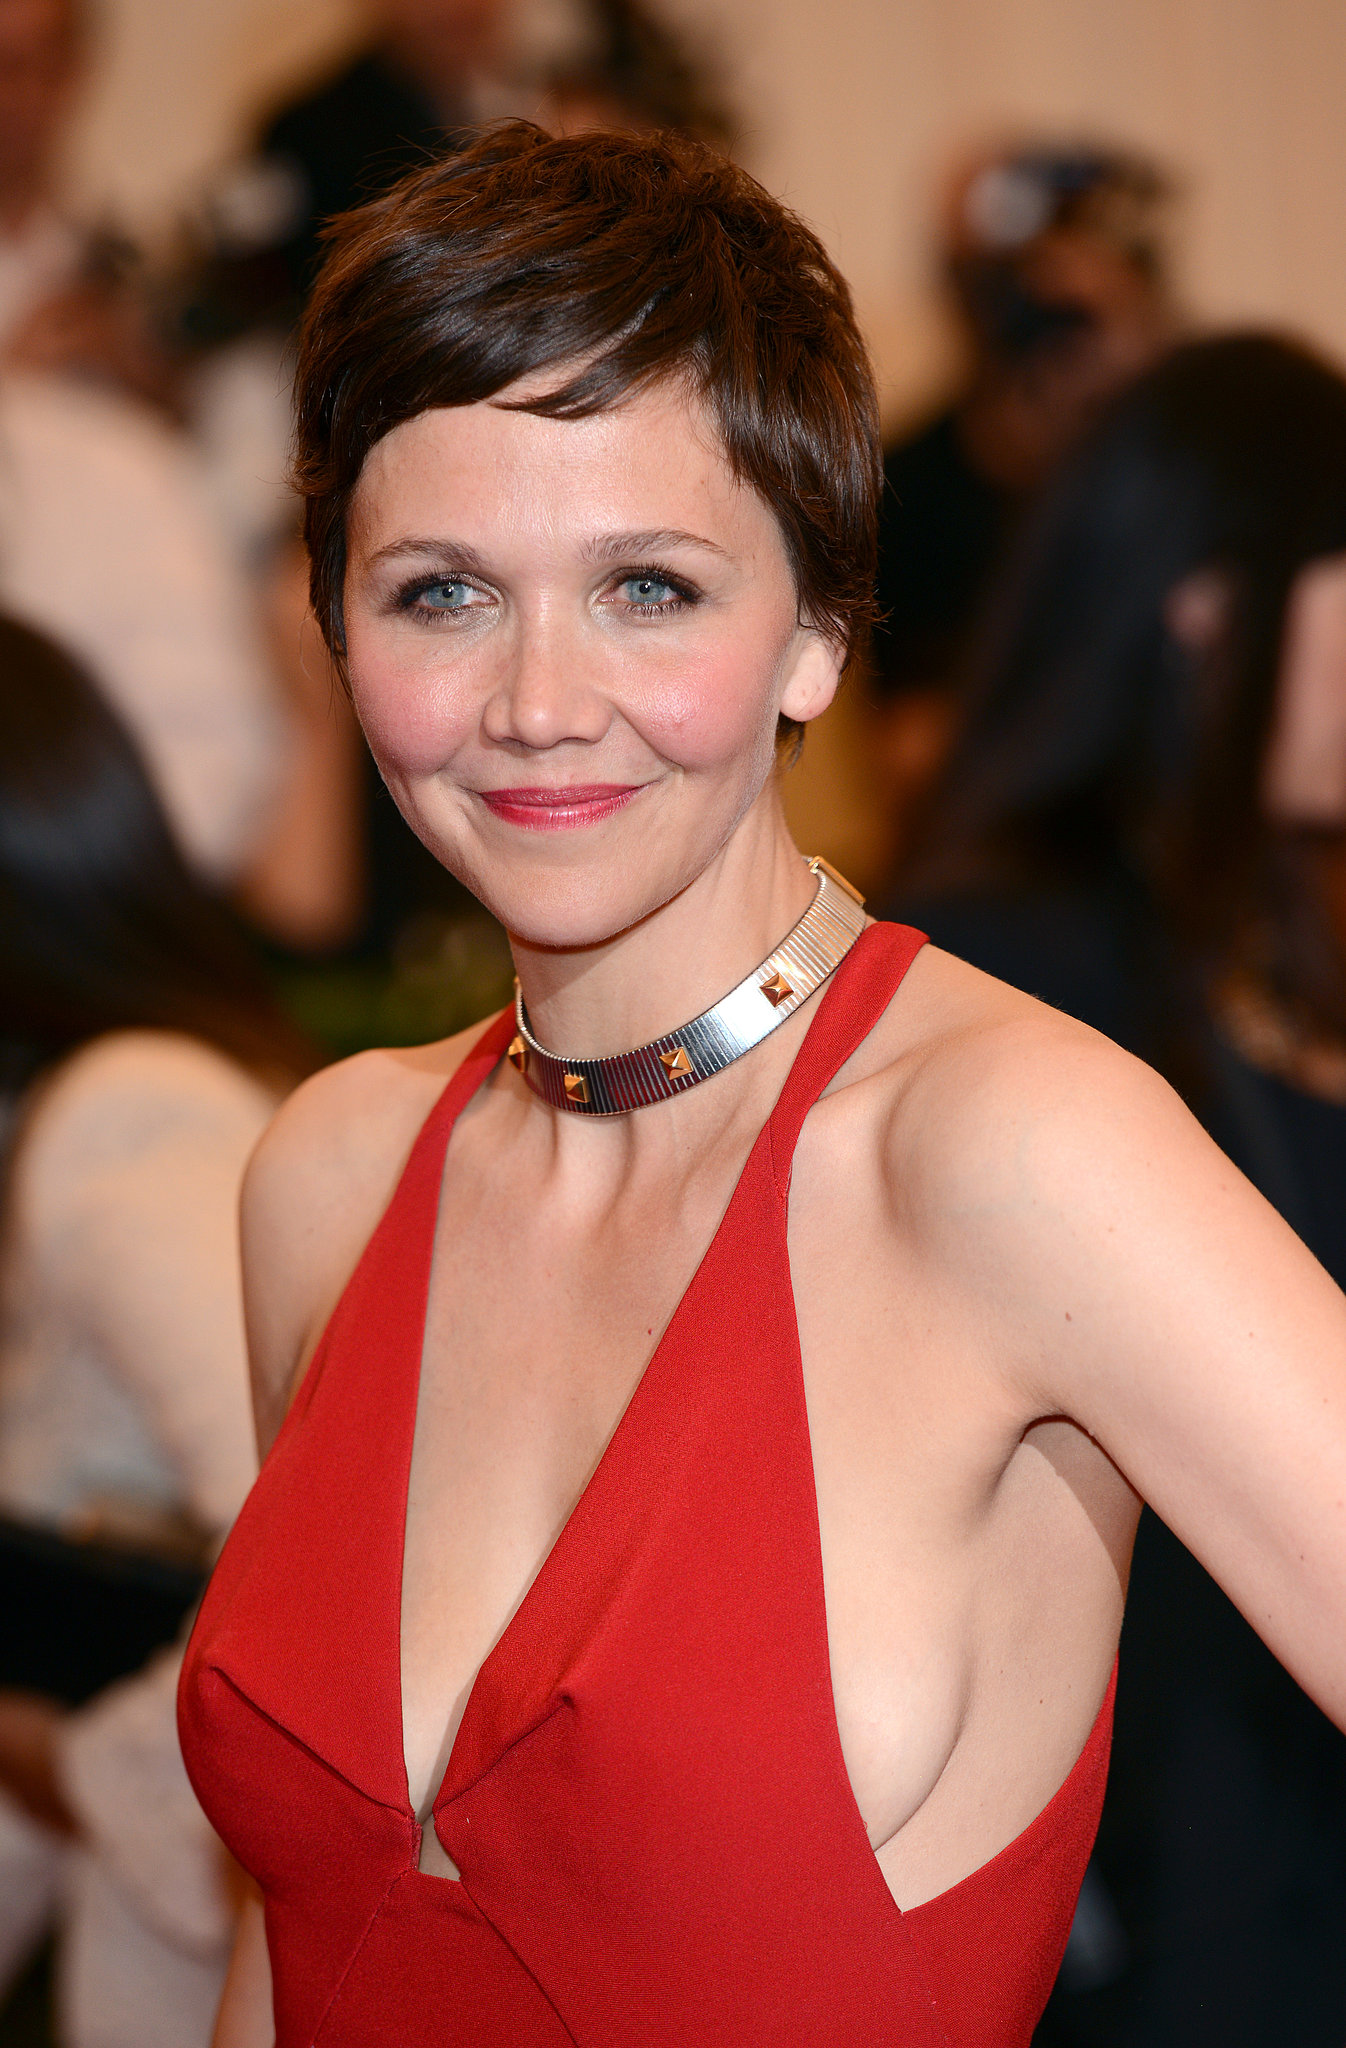 Actress Maggie Gyllenhaal recently took to the pixie cut, which she showed off at this year's Met Gala.